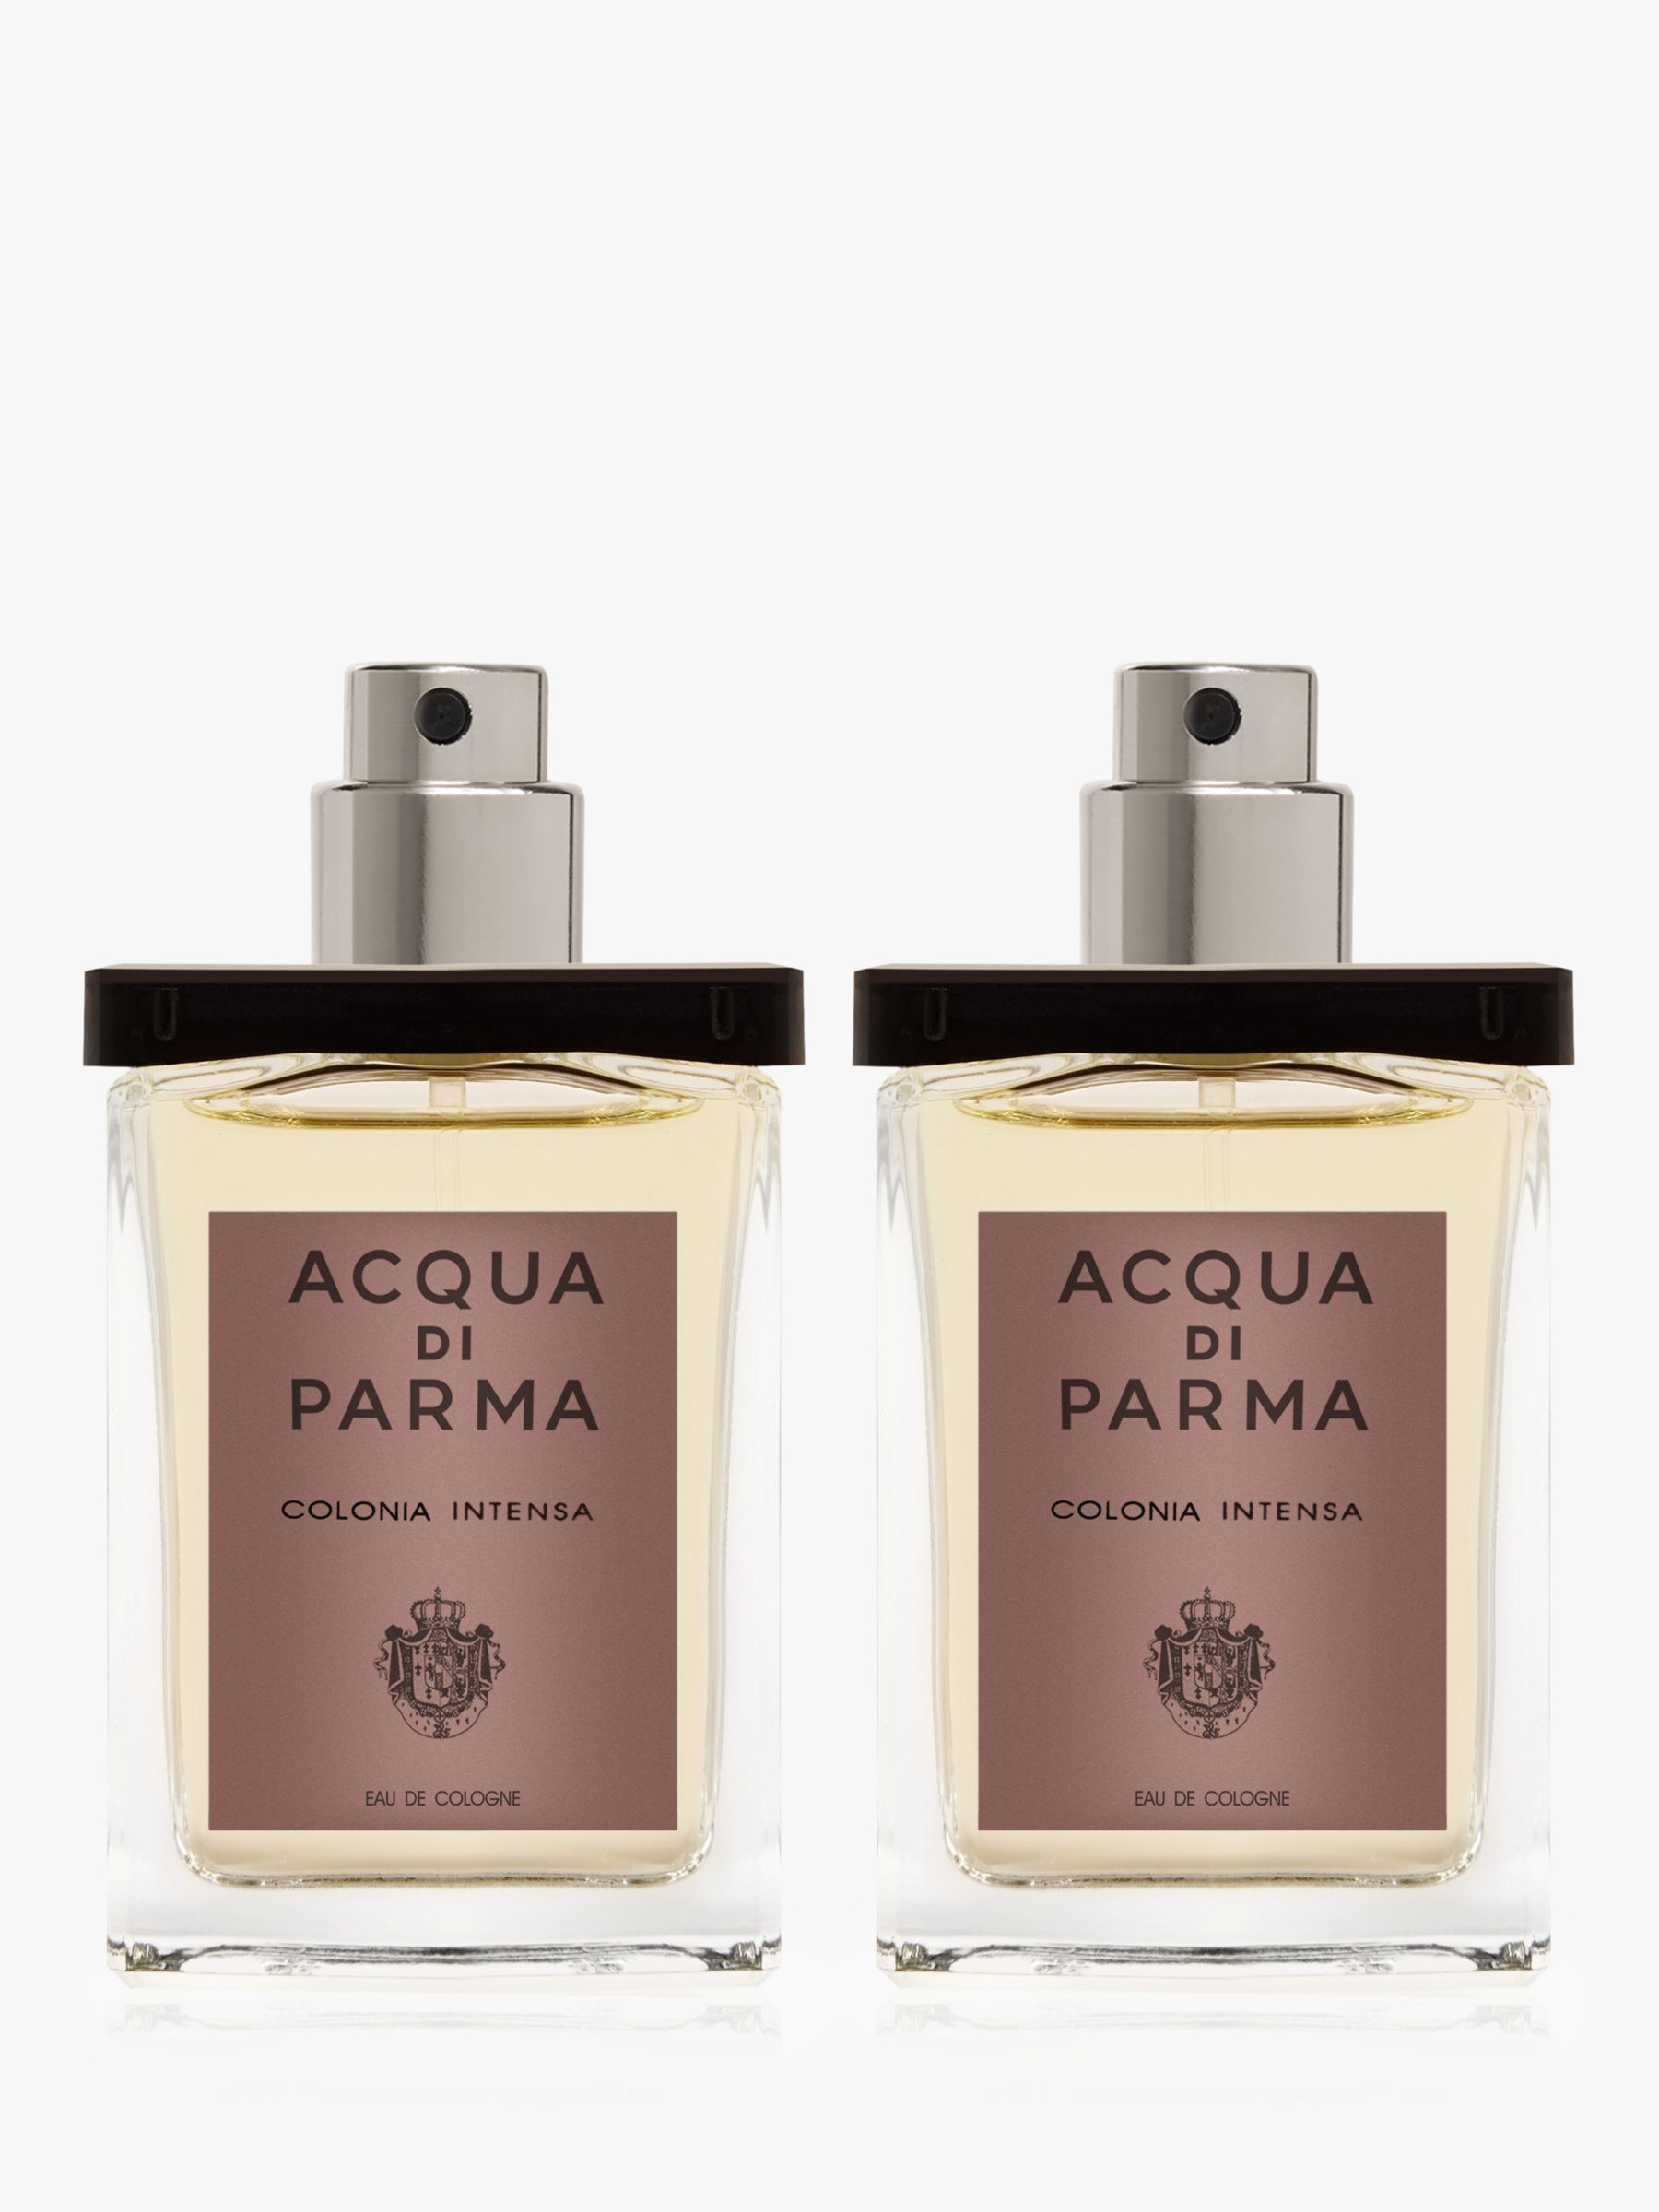 Acqua Di Parma Acqua di Parma Colonia Intensa Travel Spray Refill, 2 x 30ml